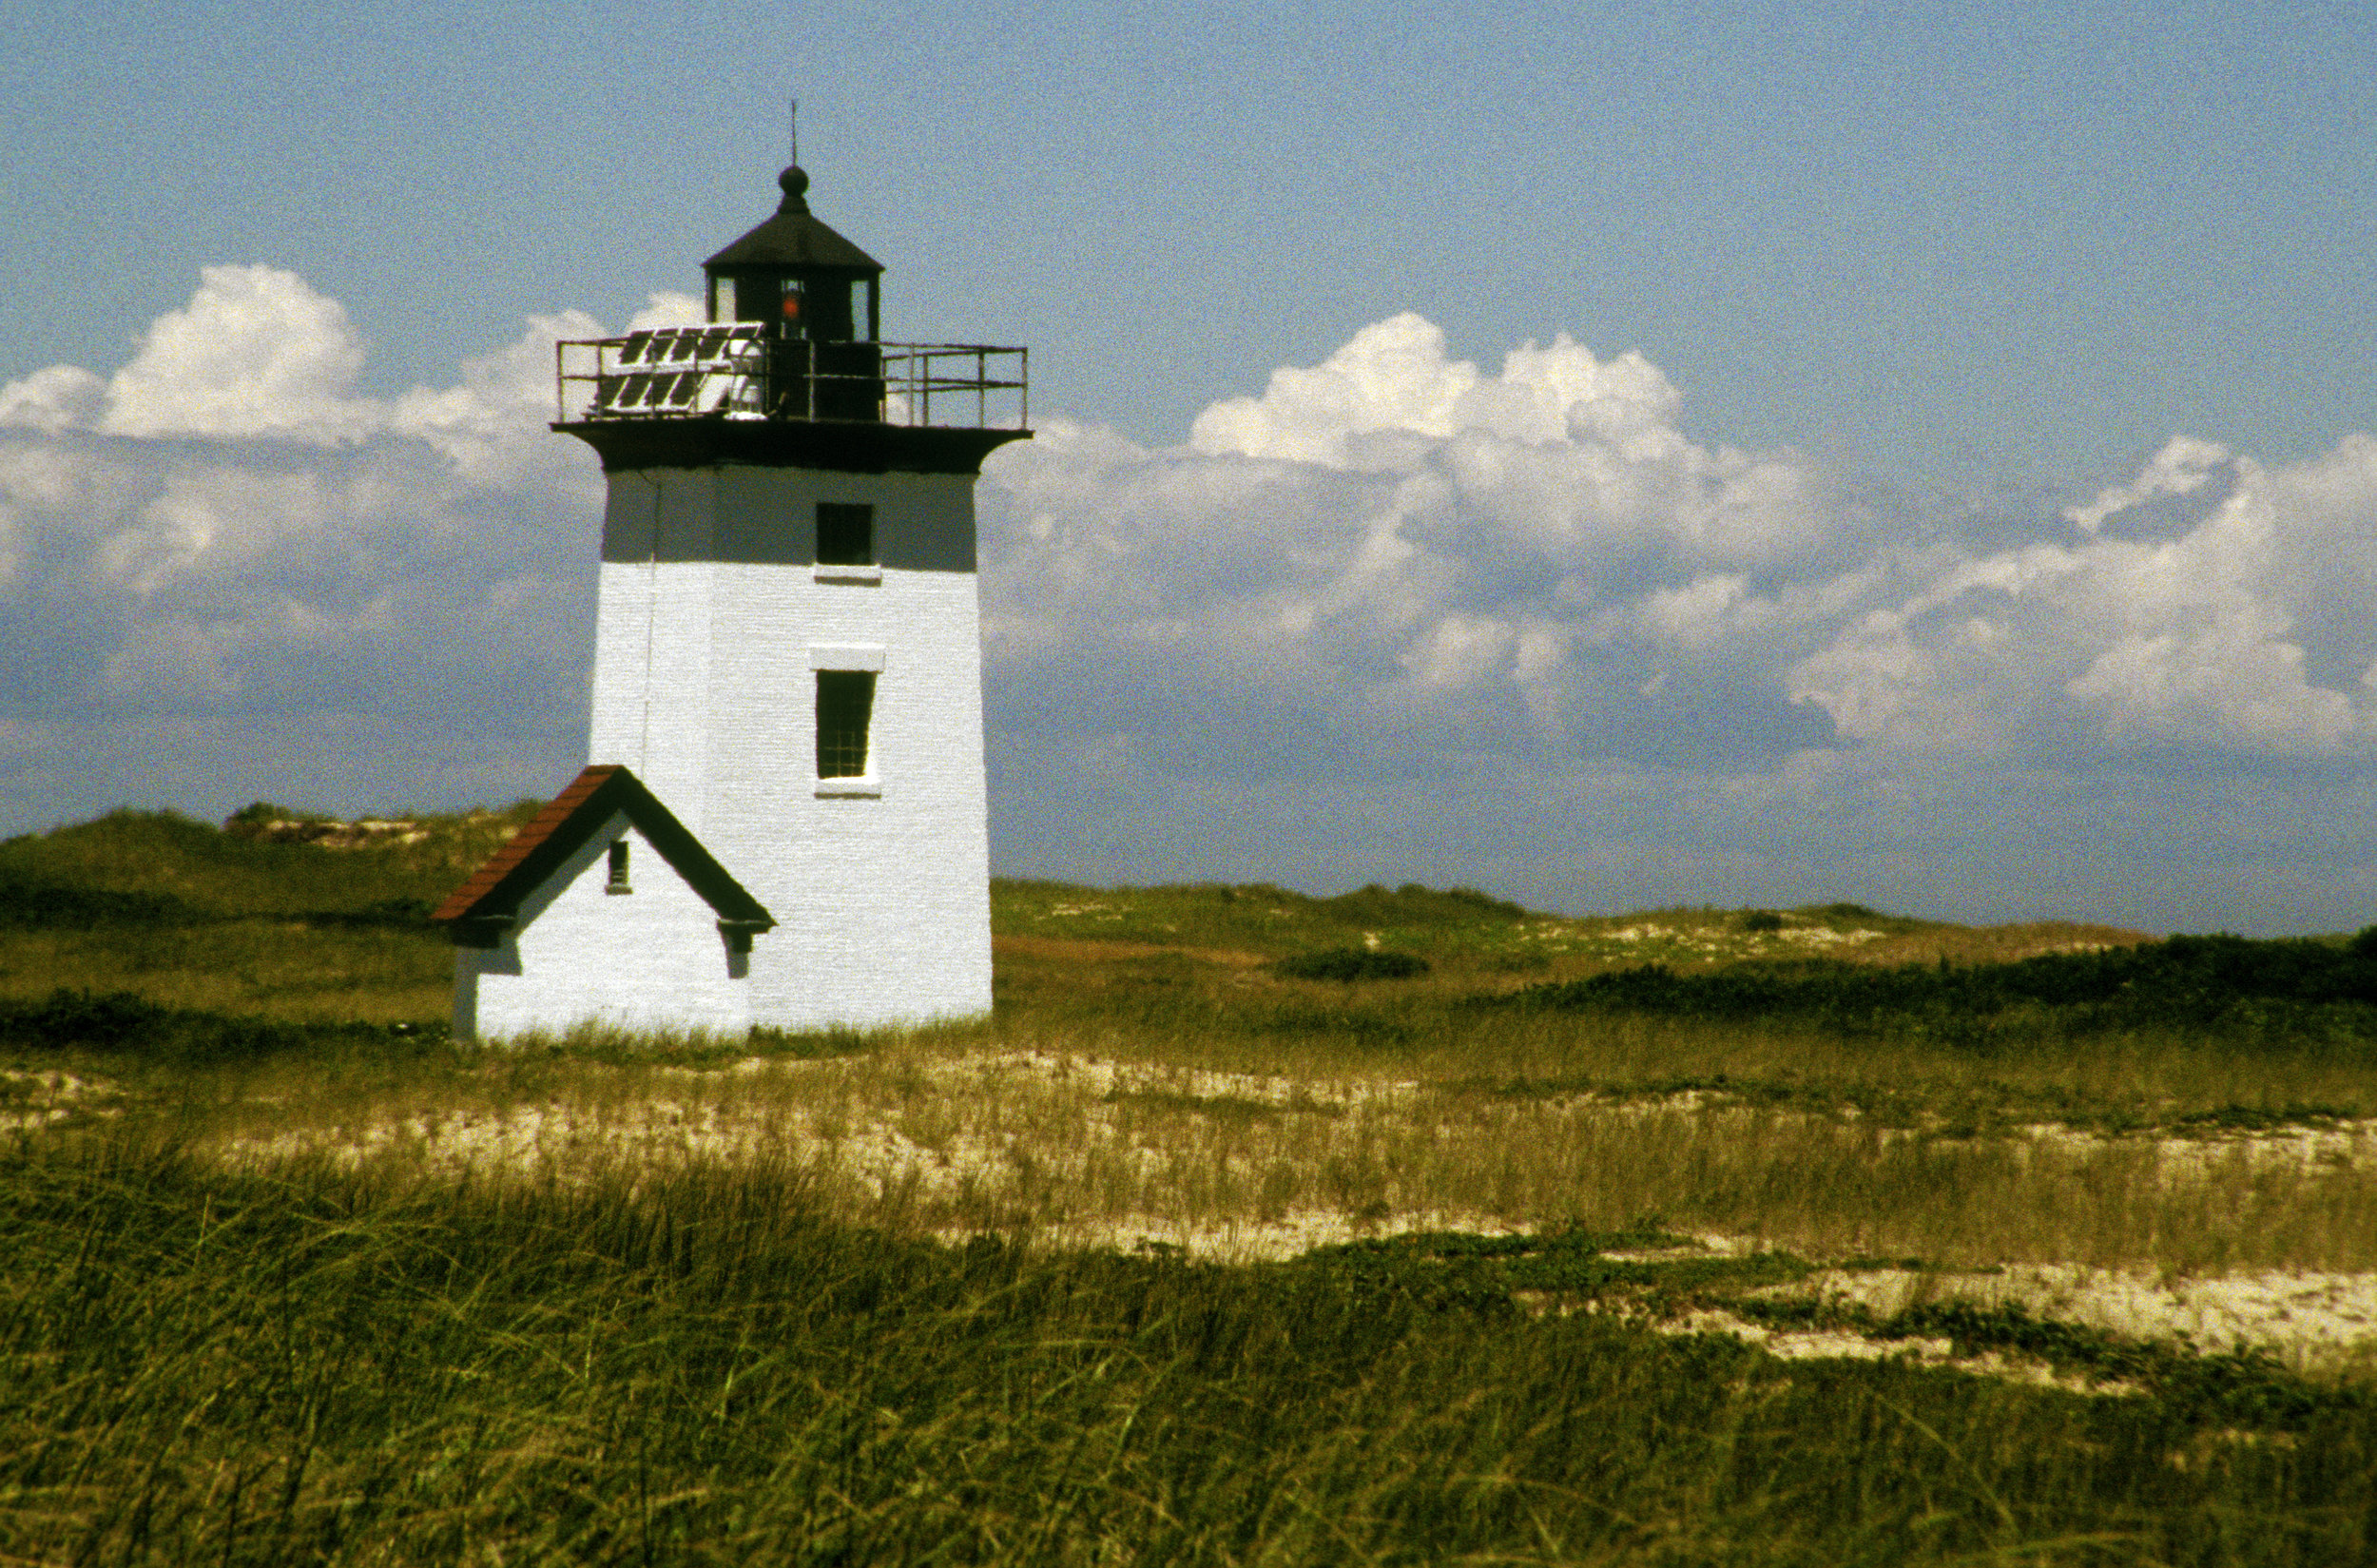 Ptown-Lighthouse-C4.jpg